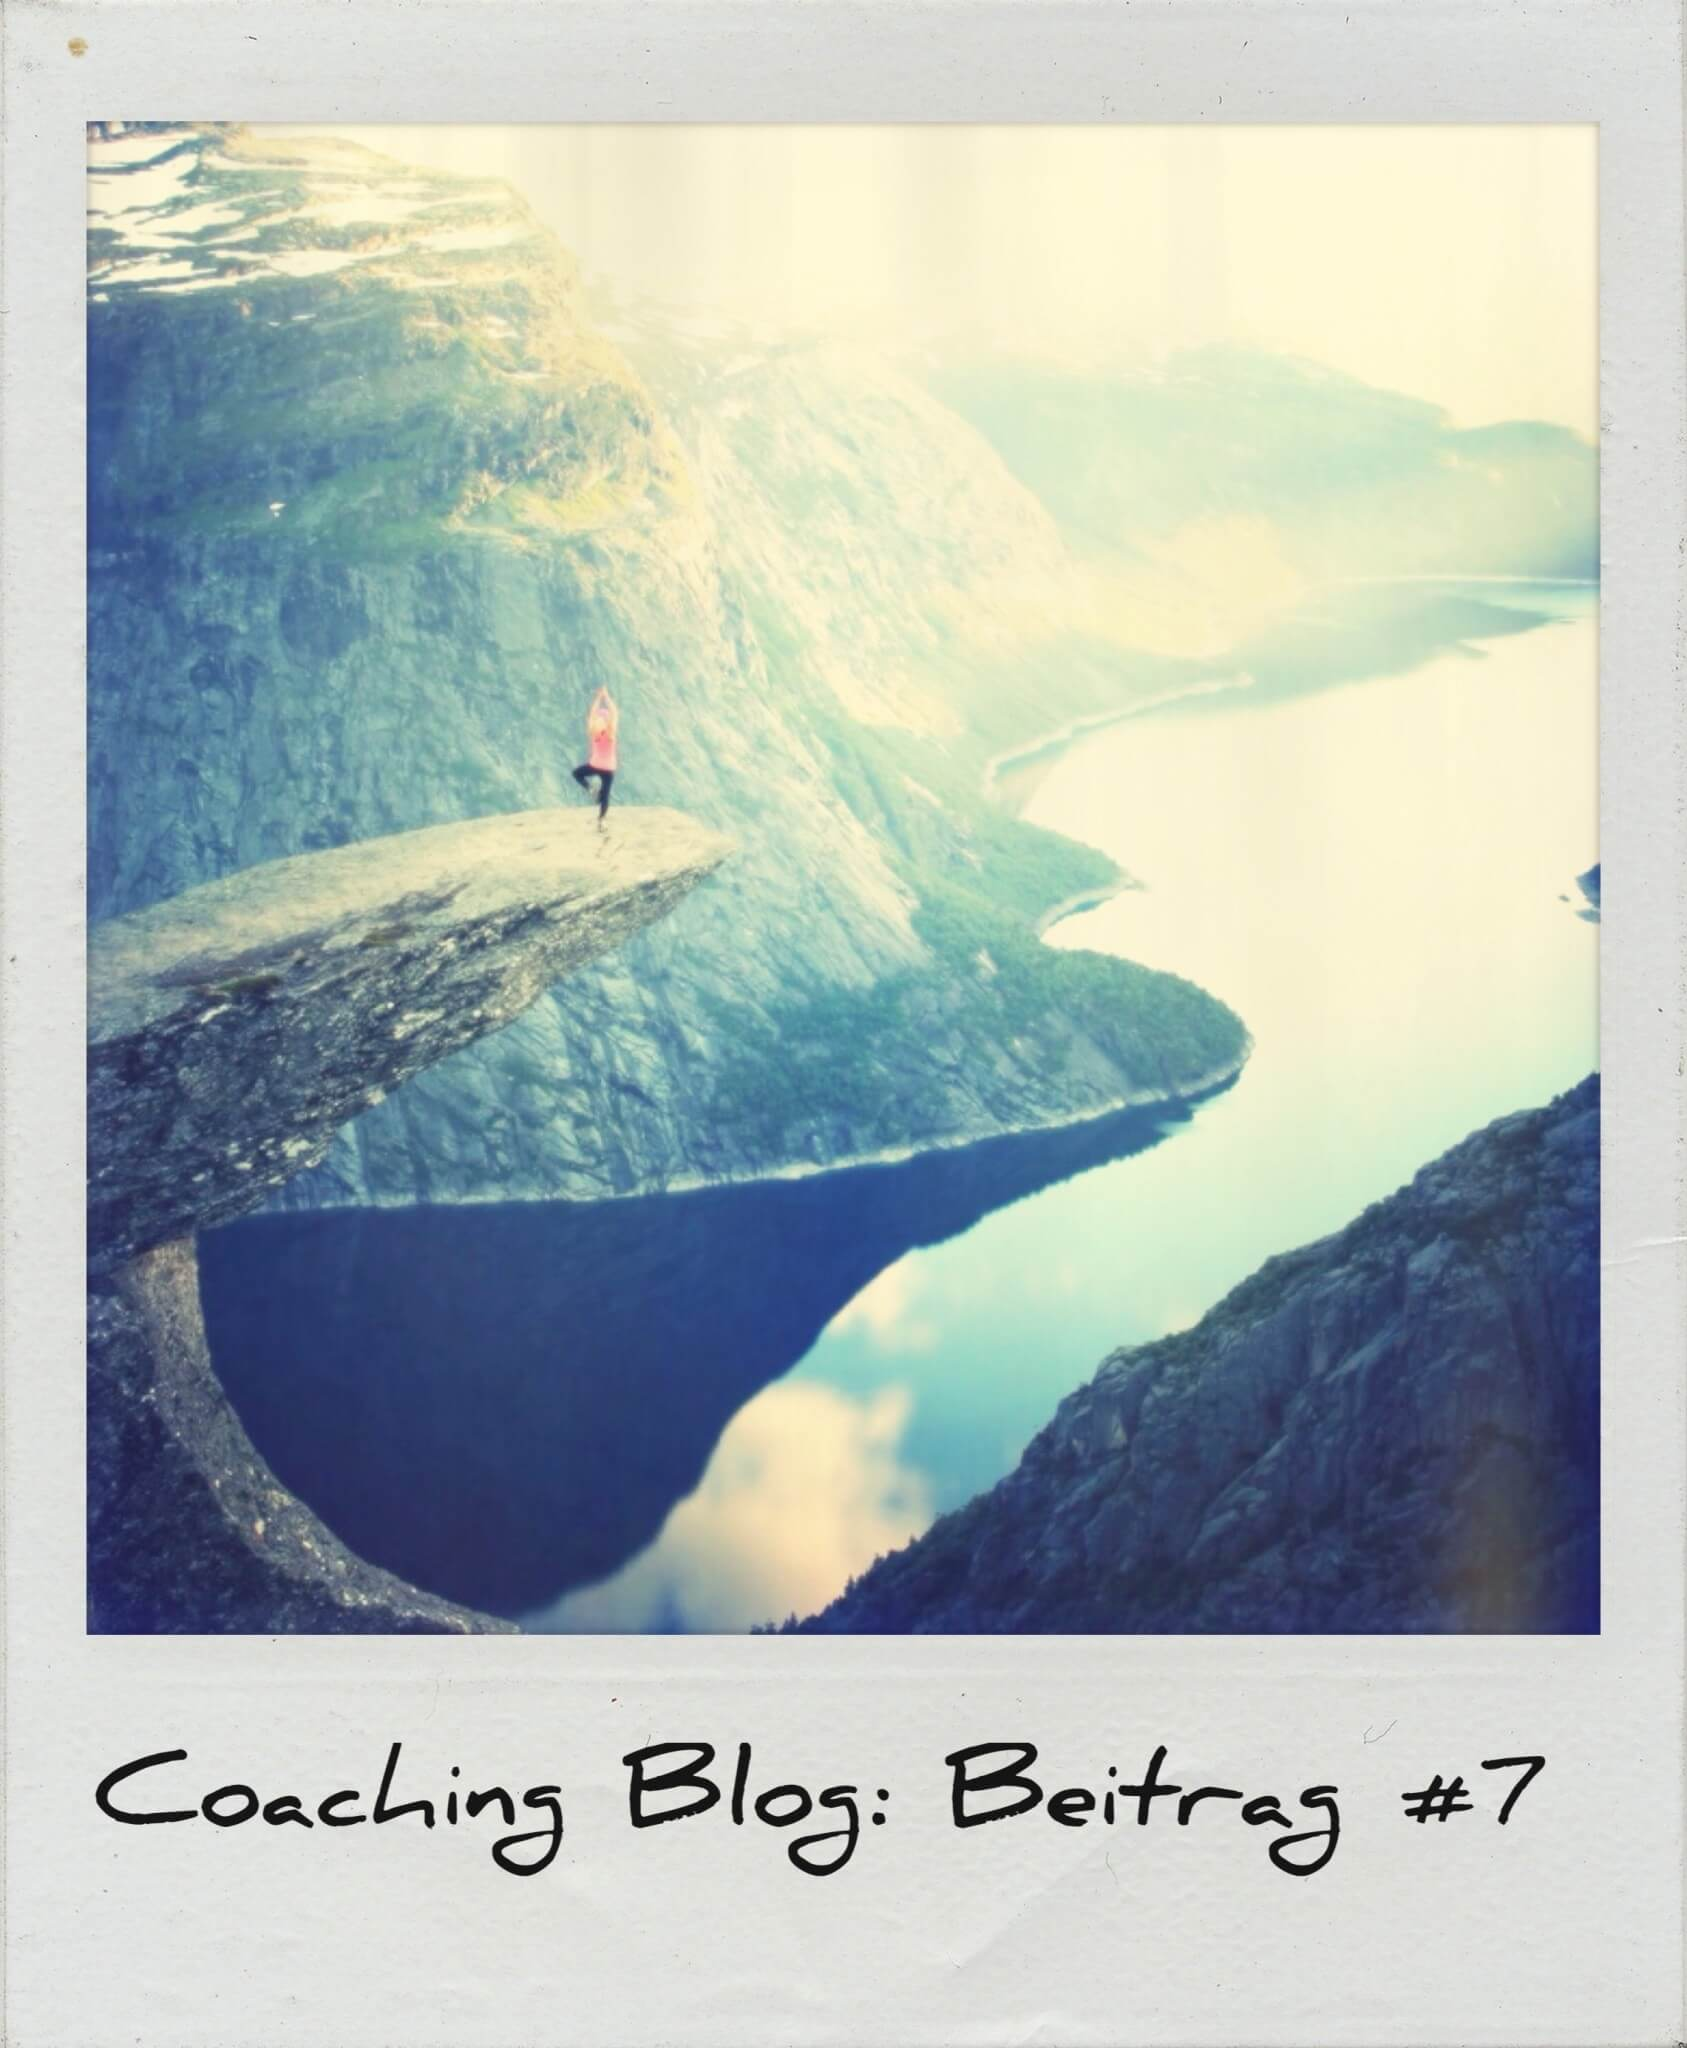 Coaching Blog, Life Coaching Laura Seiler Berlin